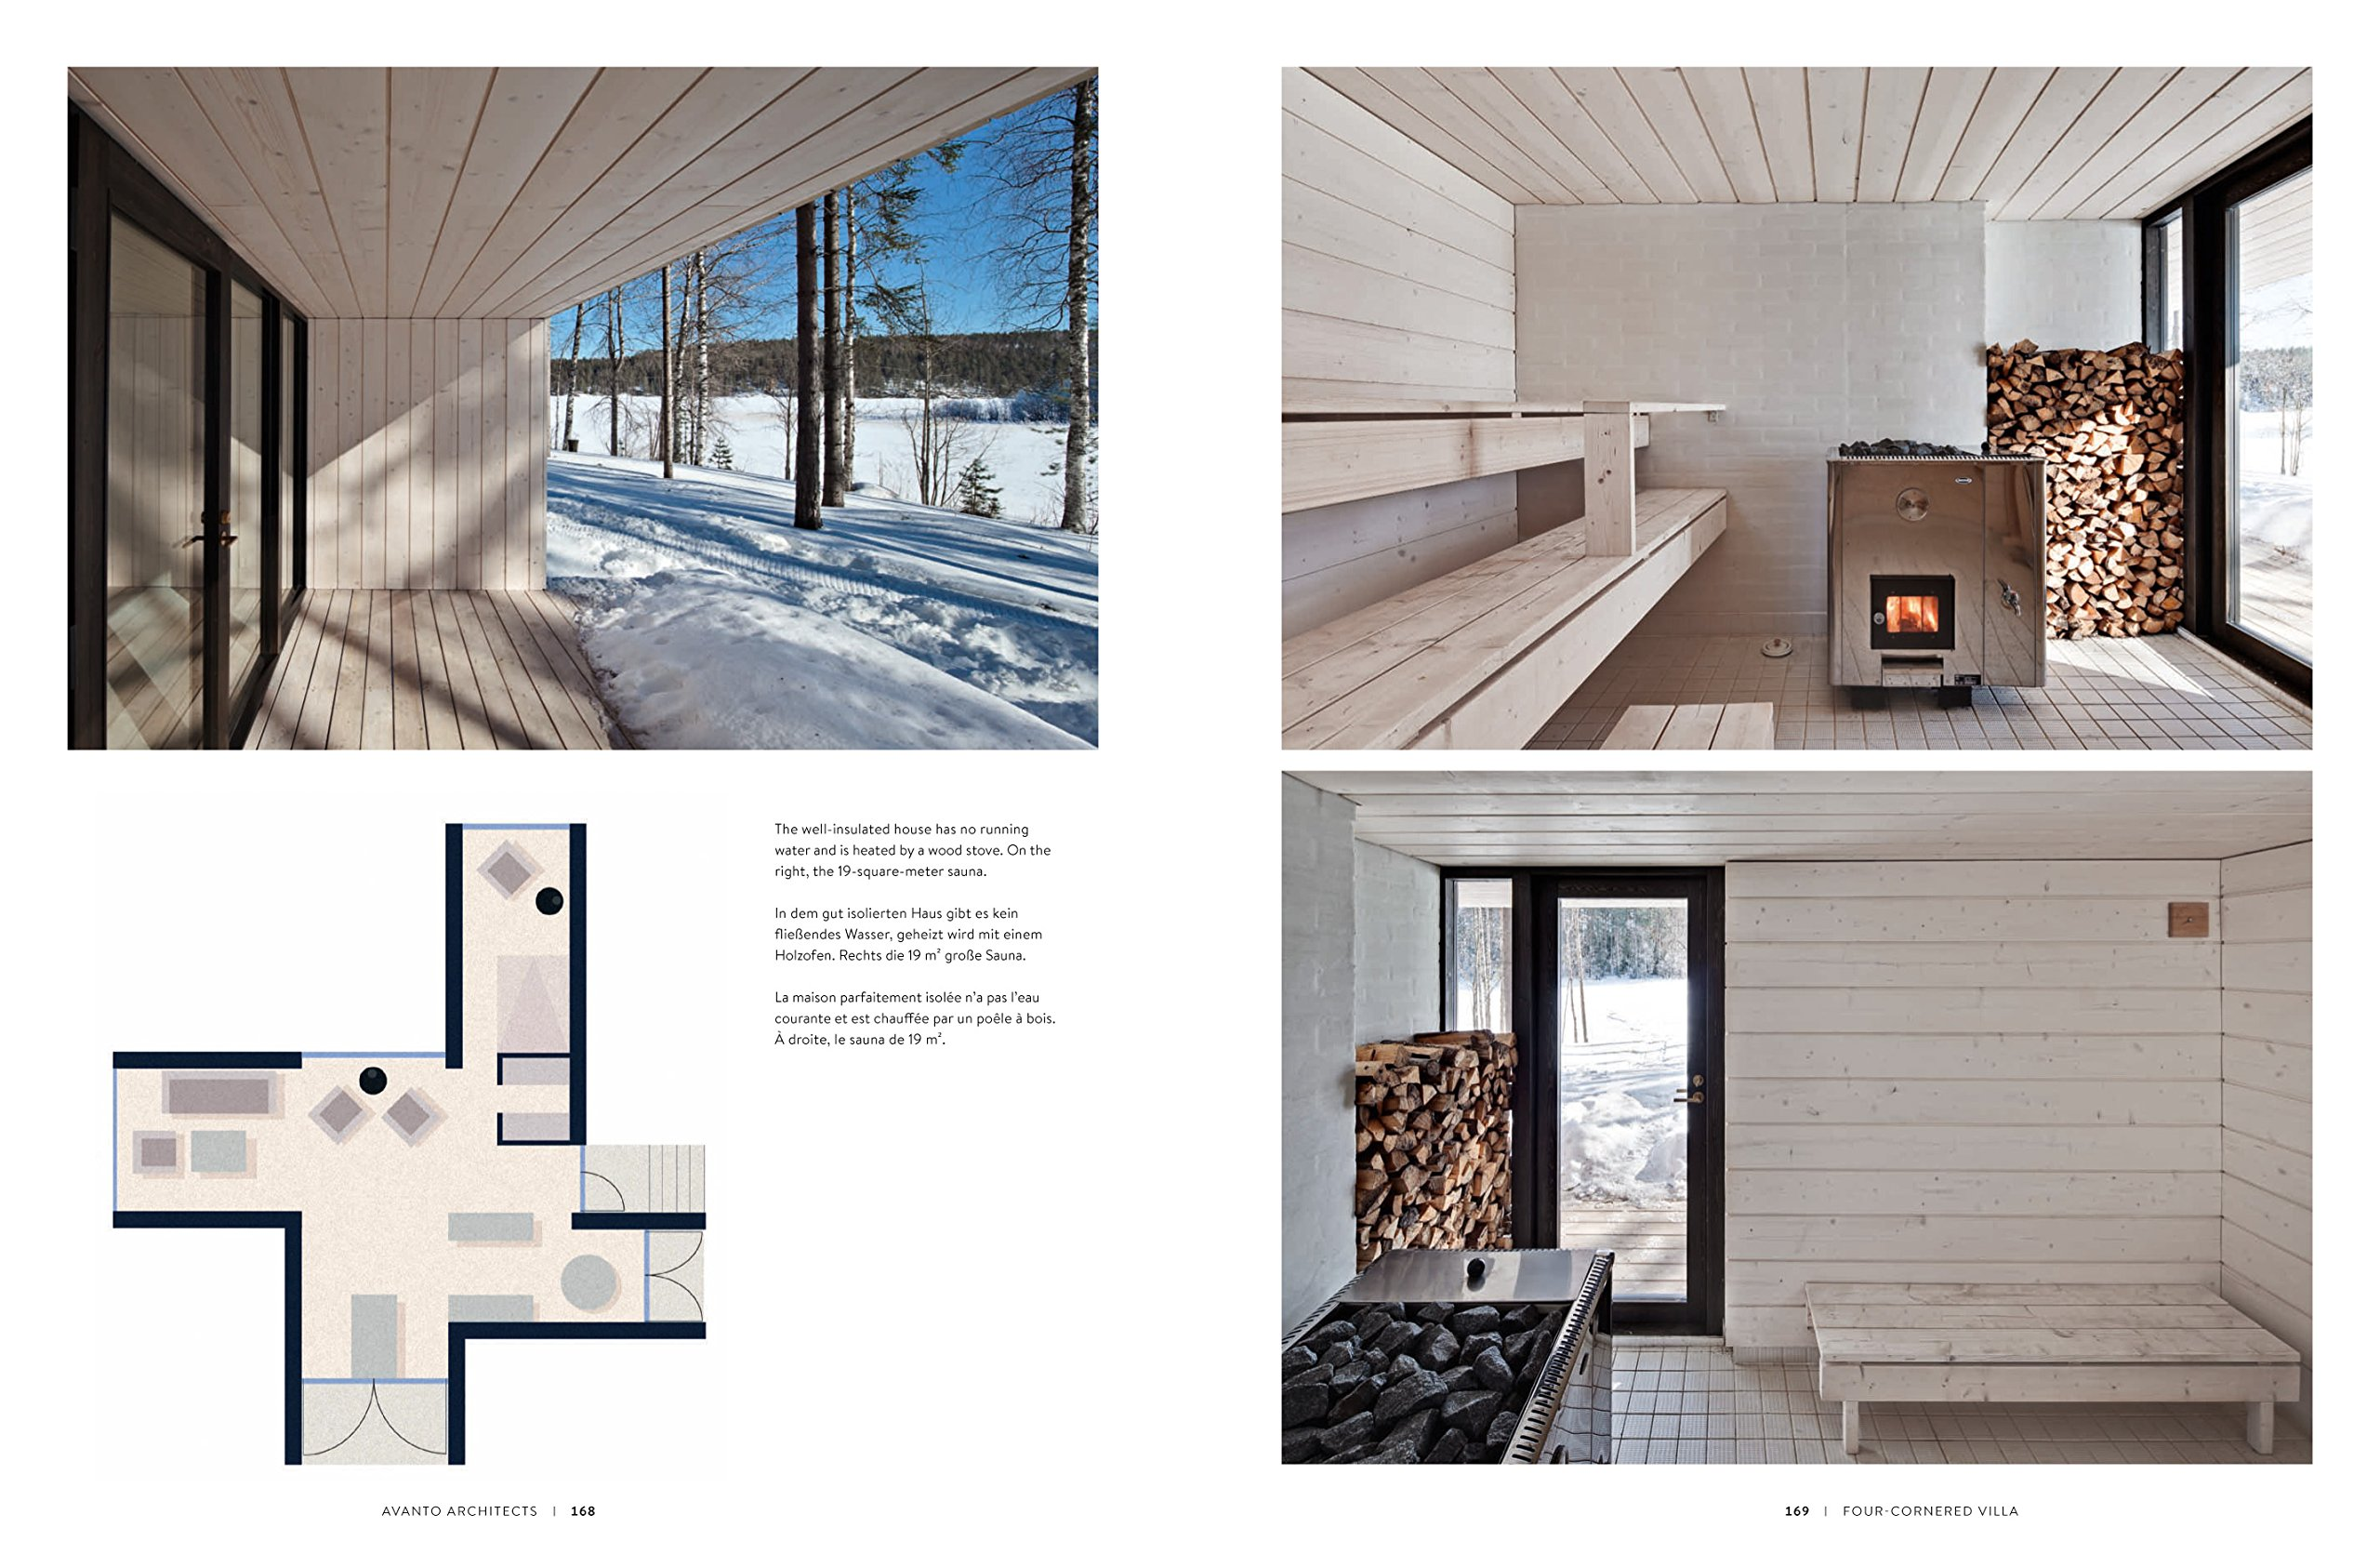 Cabins By Philip Jodidi, Illustrations By Marie Laure Cruschi